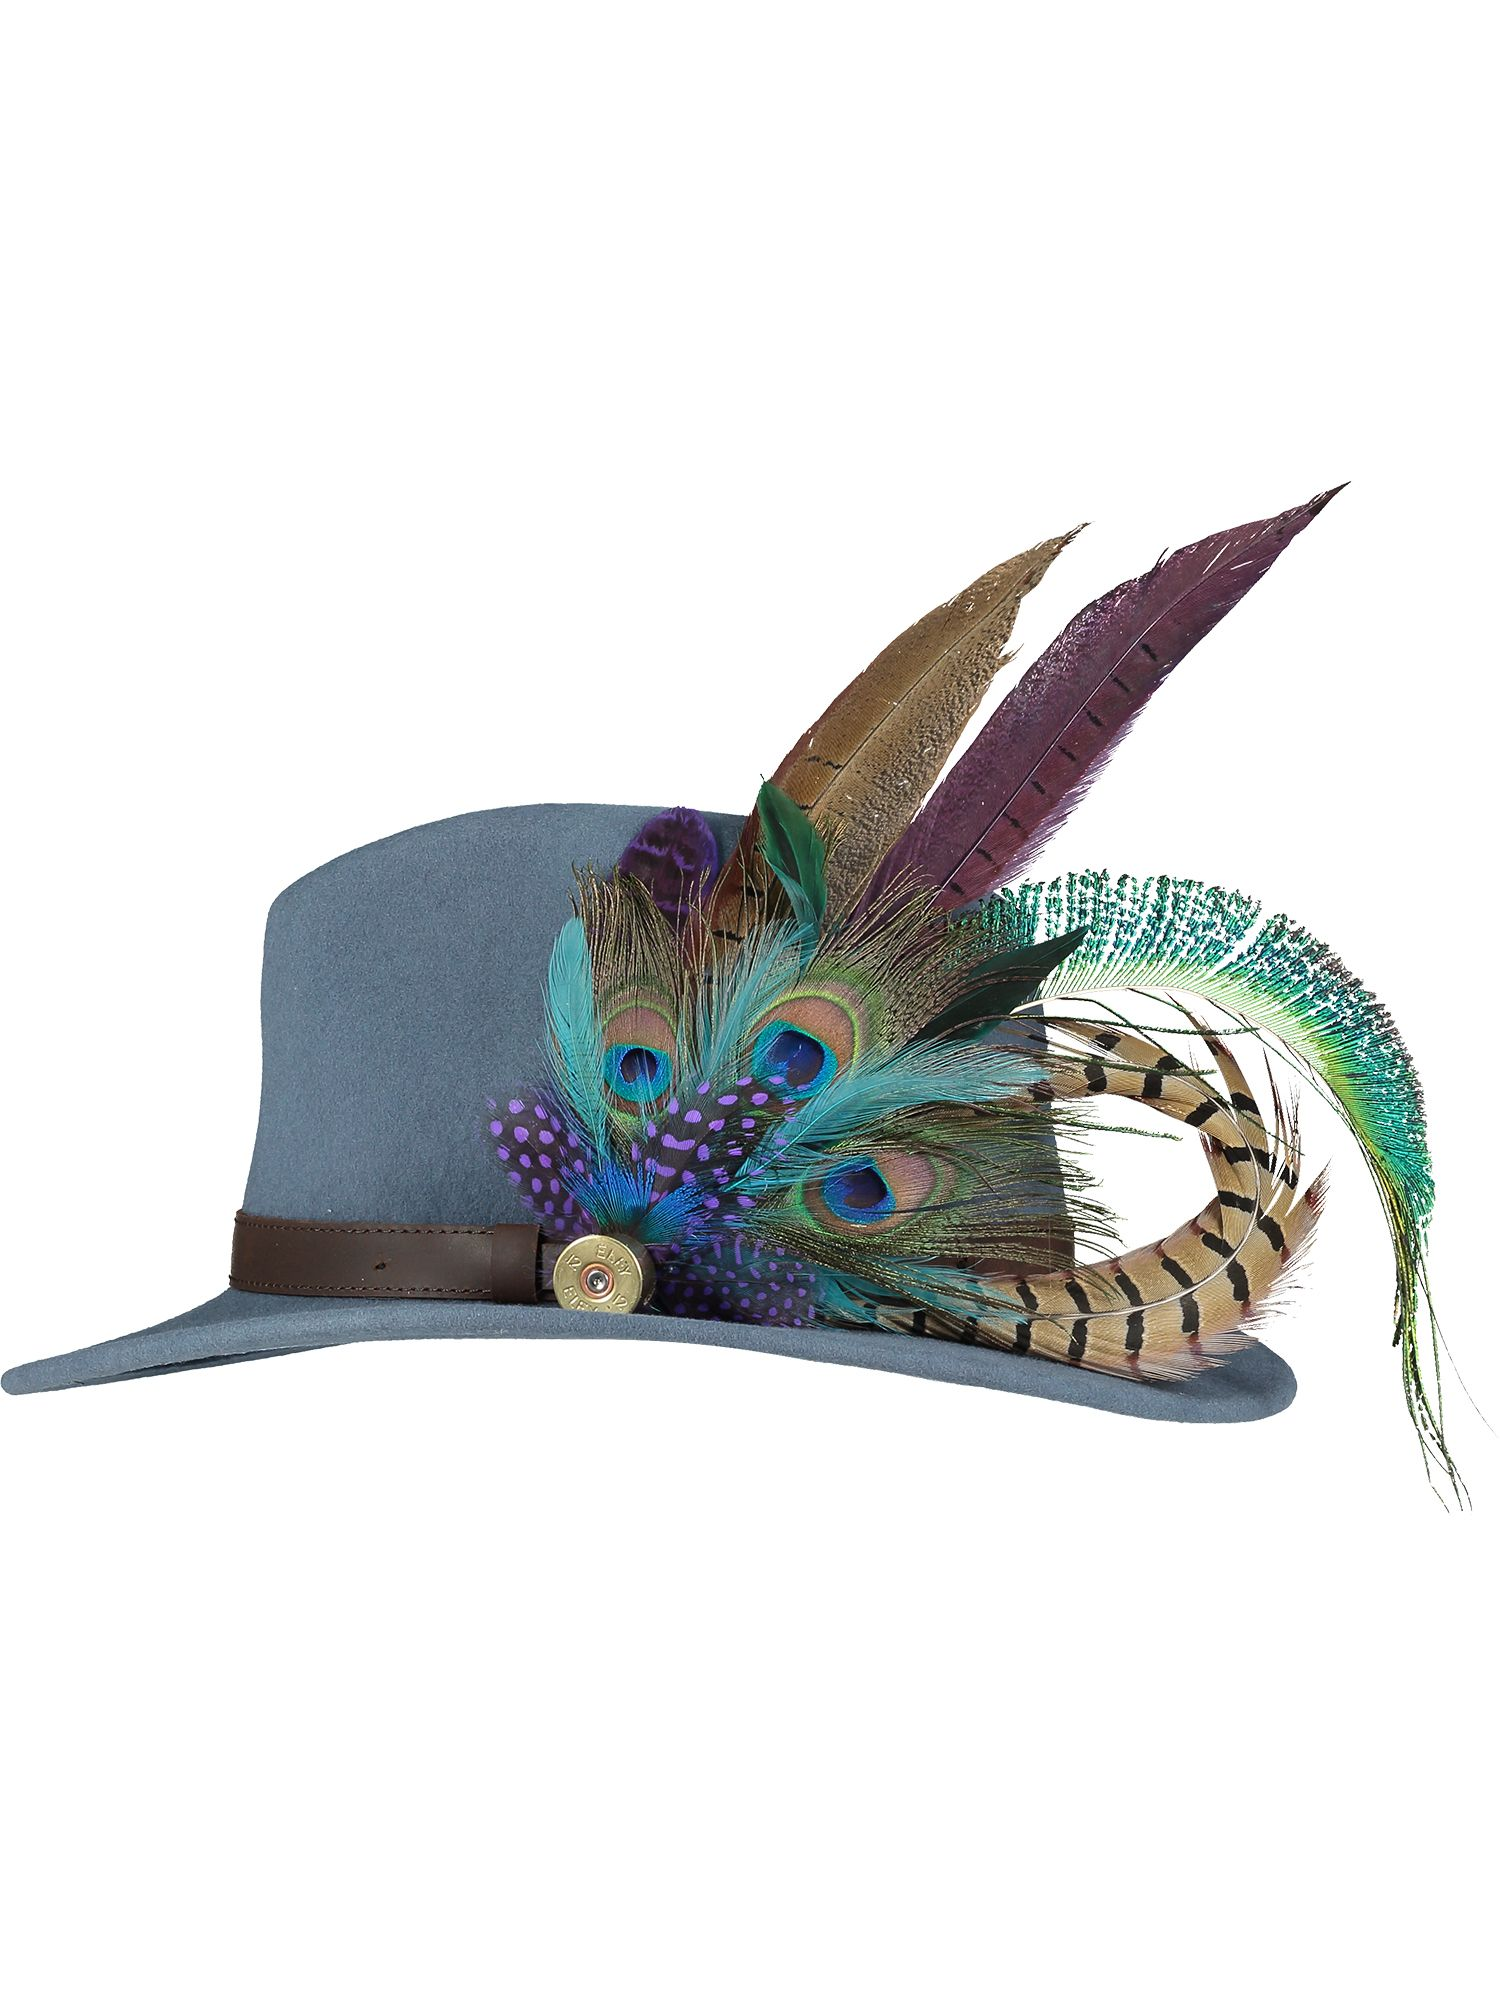 Deluxe Peacock Pin and Hat 1